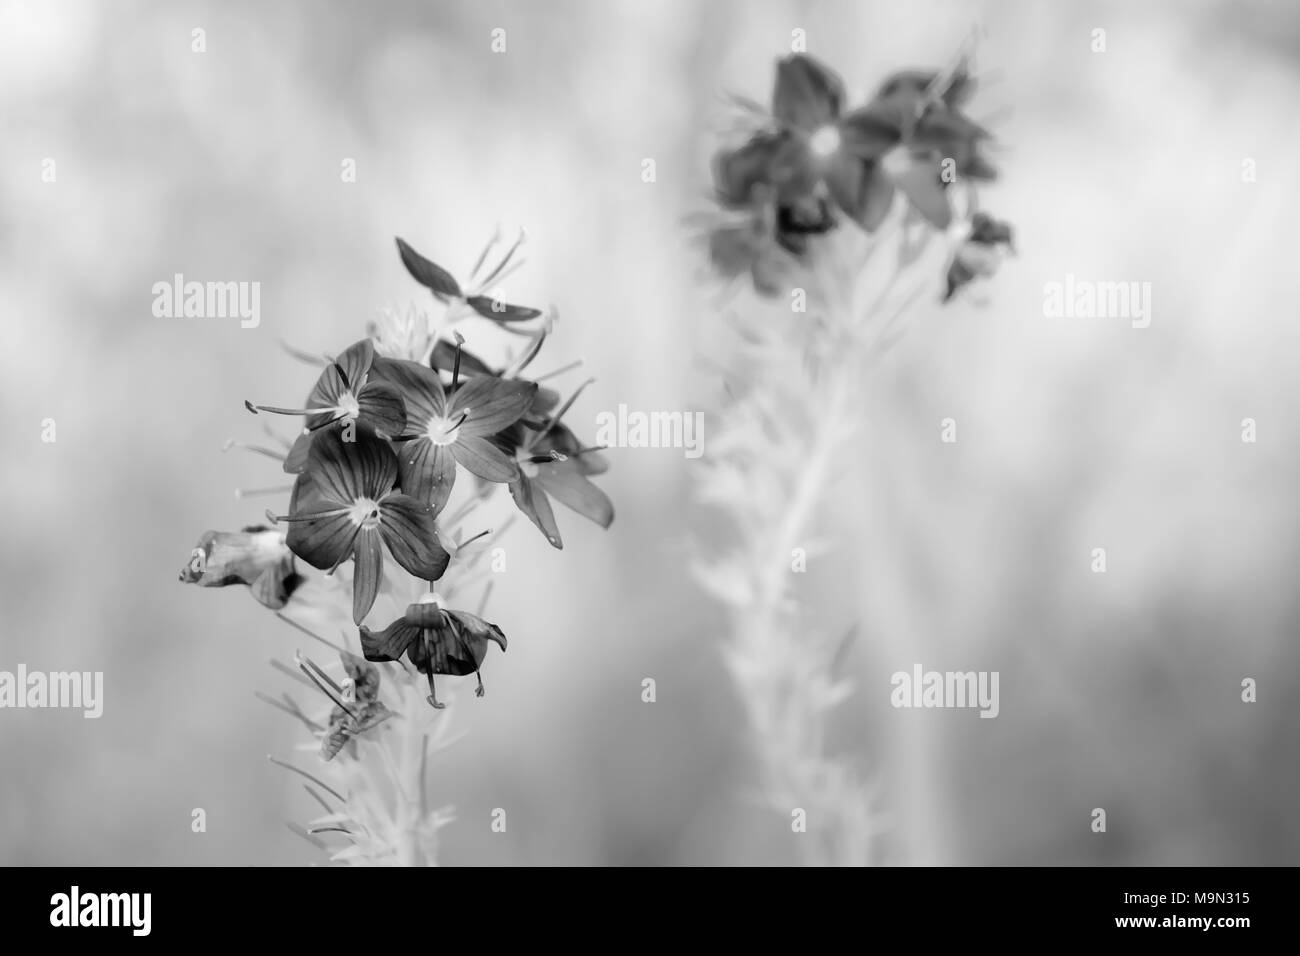 Medicinal Flower Black And White Stock Photos Images Alamy